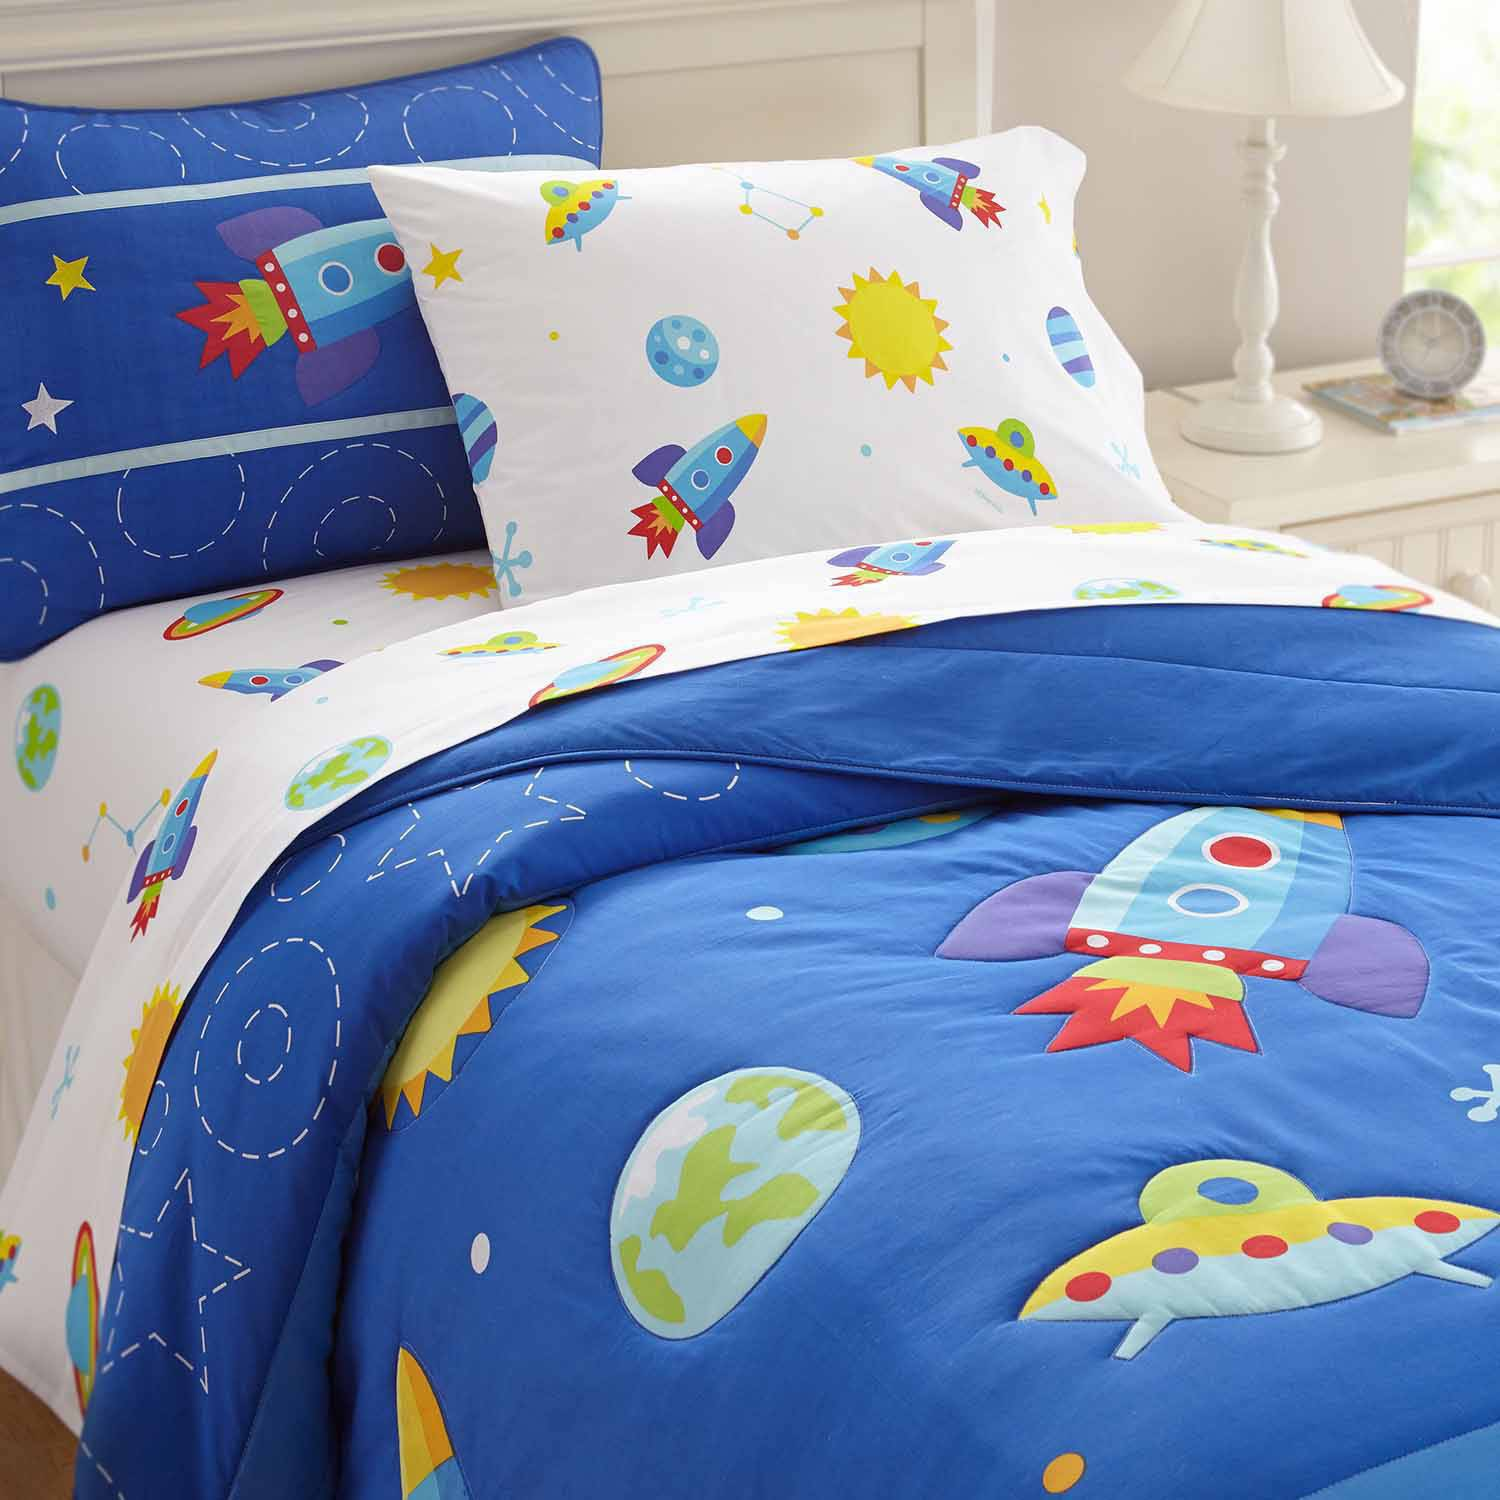 Full size comforter sets for boys - Full Size Comforter Sets For Boys 43